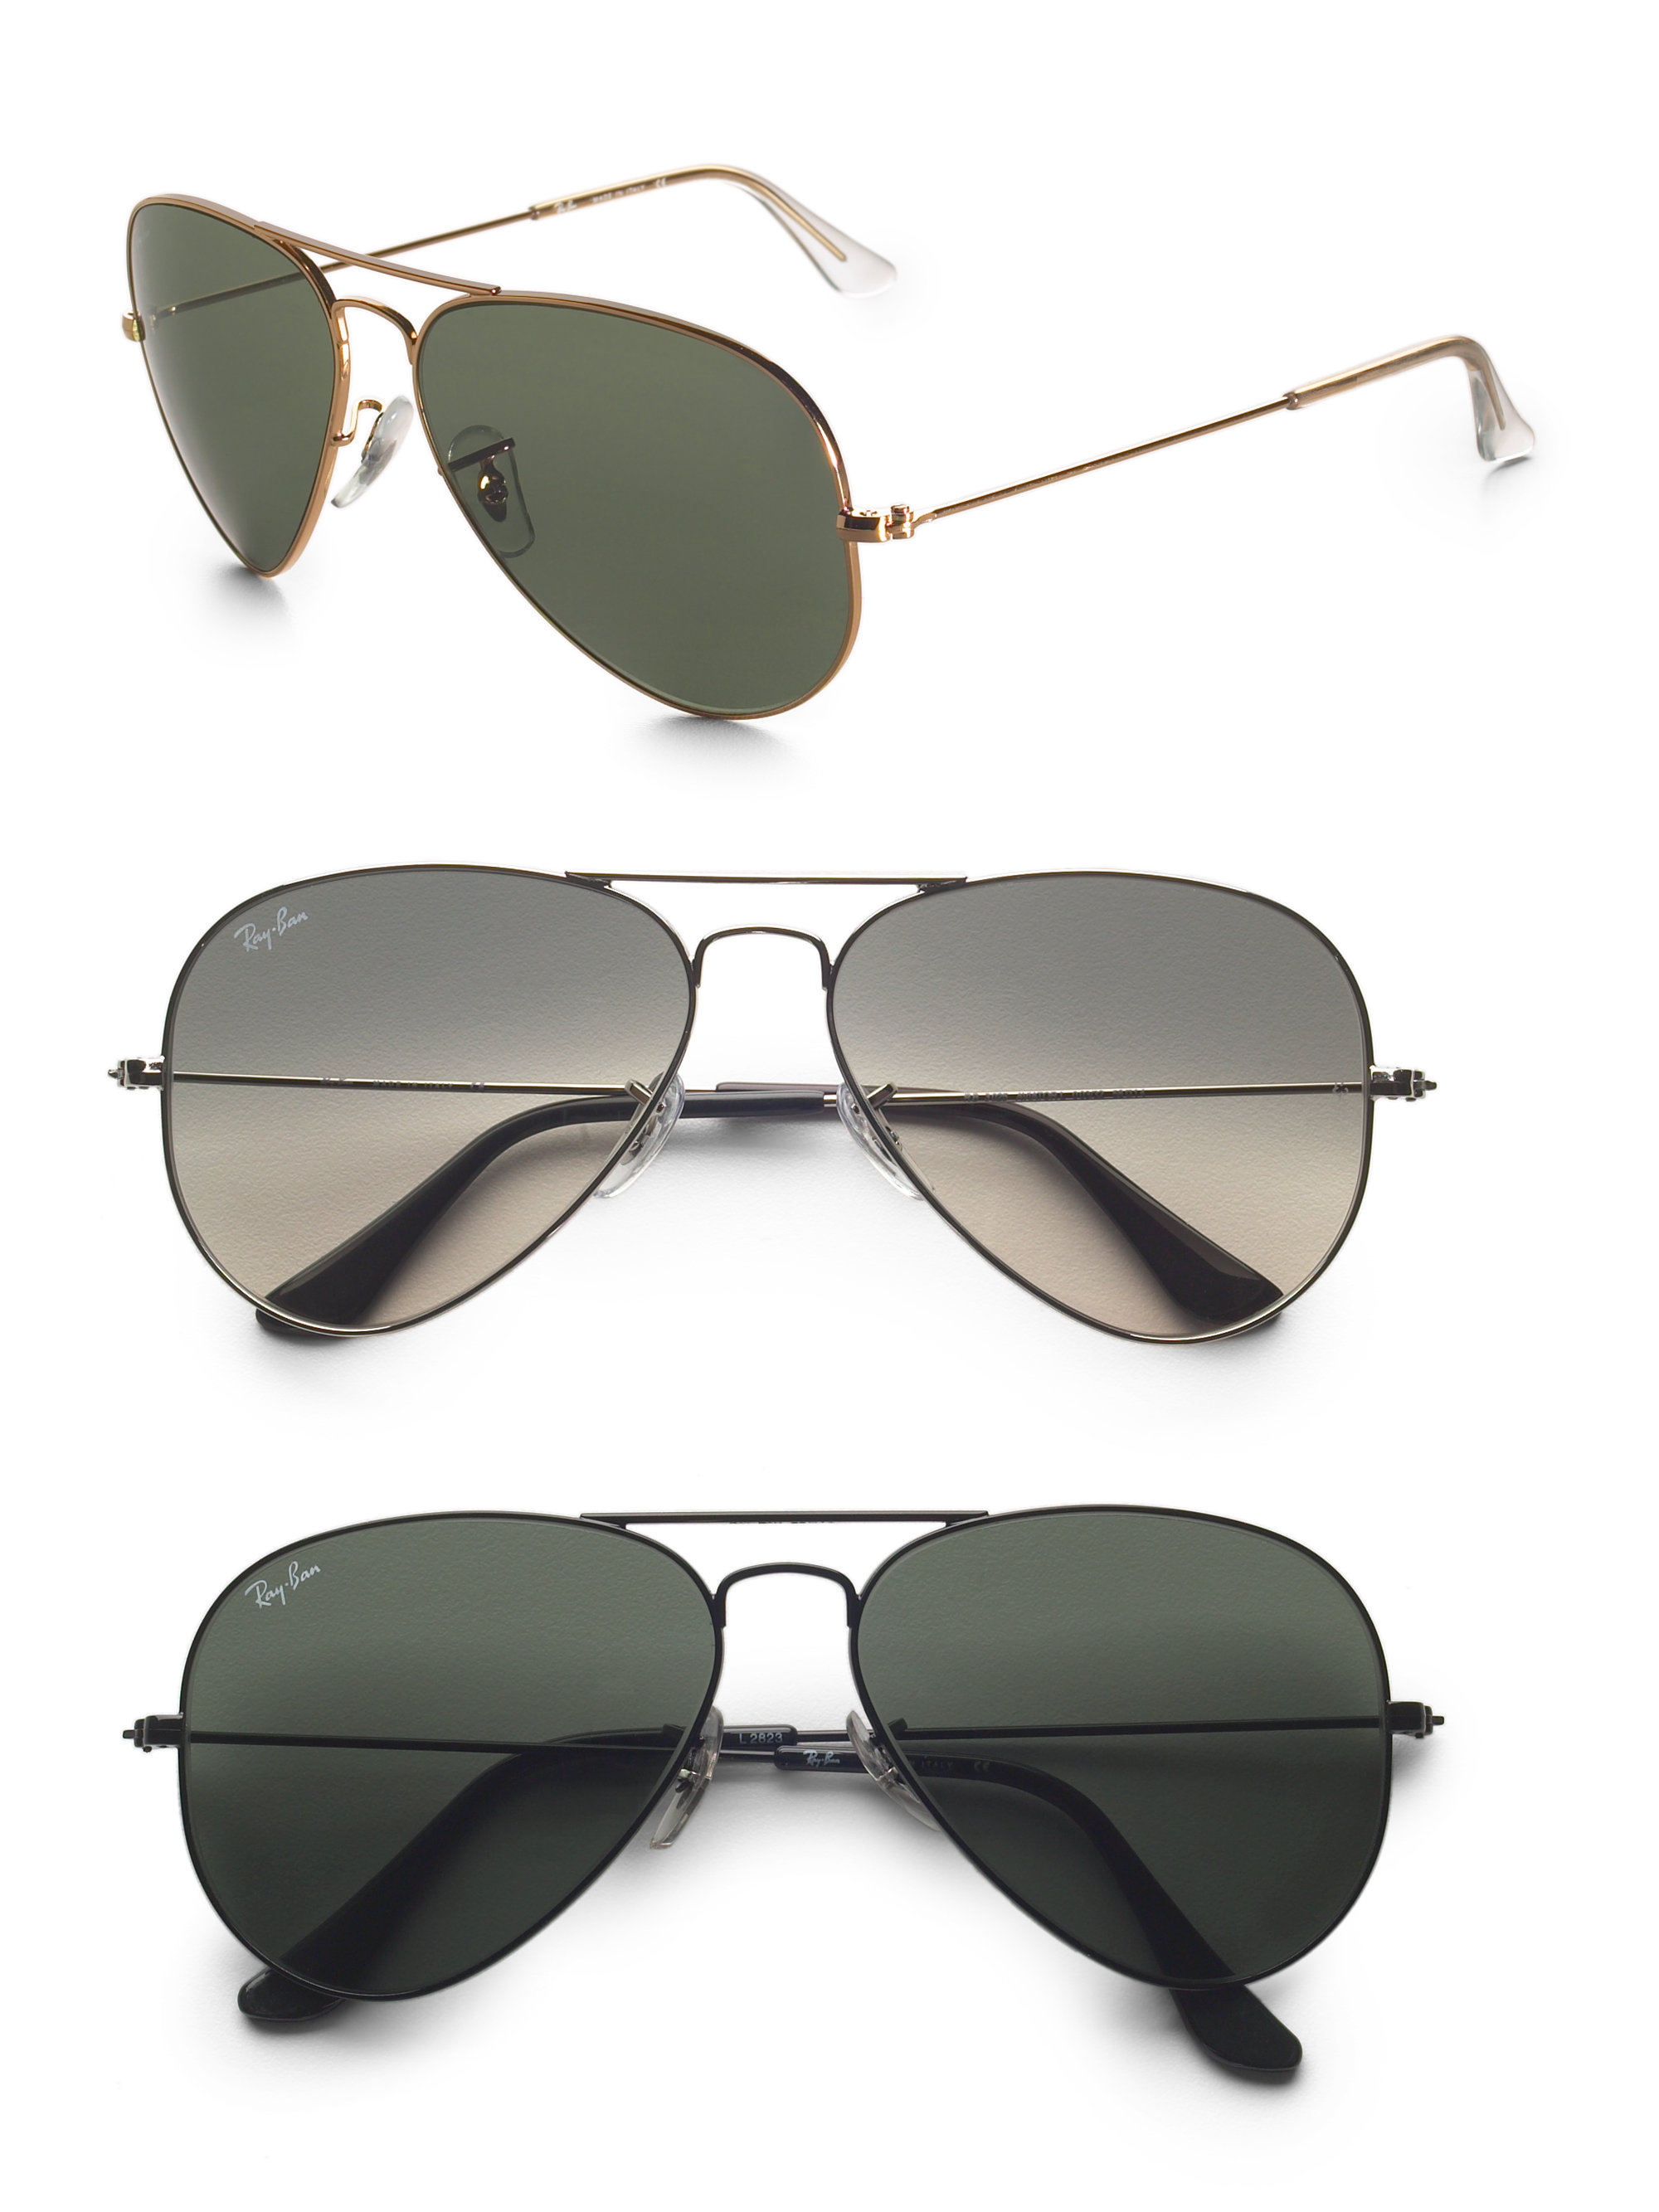 authentic ray bans for cheap  original ray ban sunglasses images